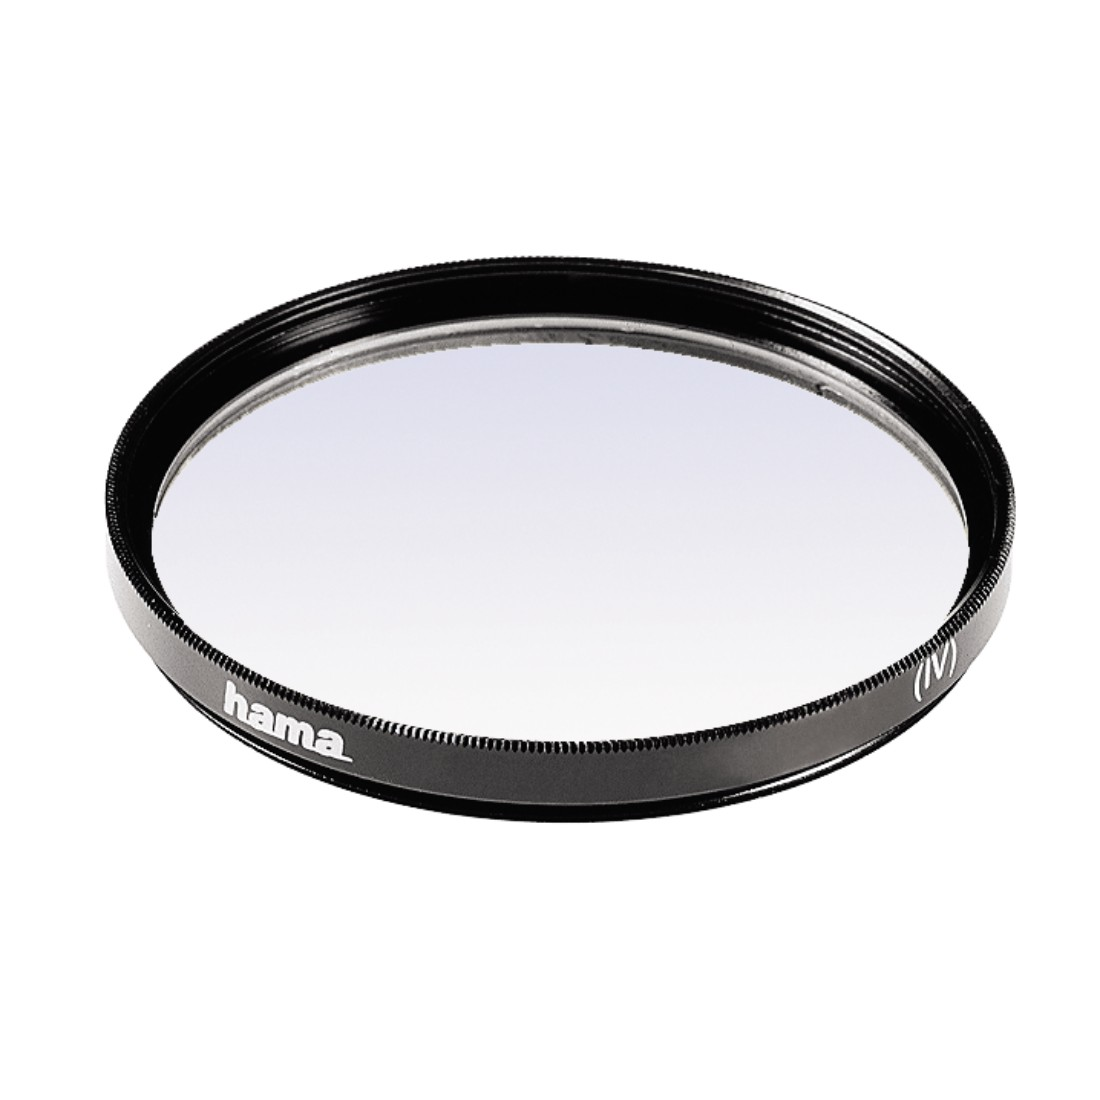 abx High-Res Image - Hama, UV Filter, coated, 67.0 mm